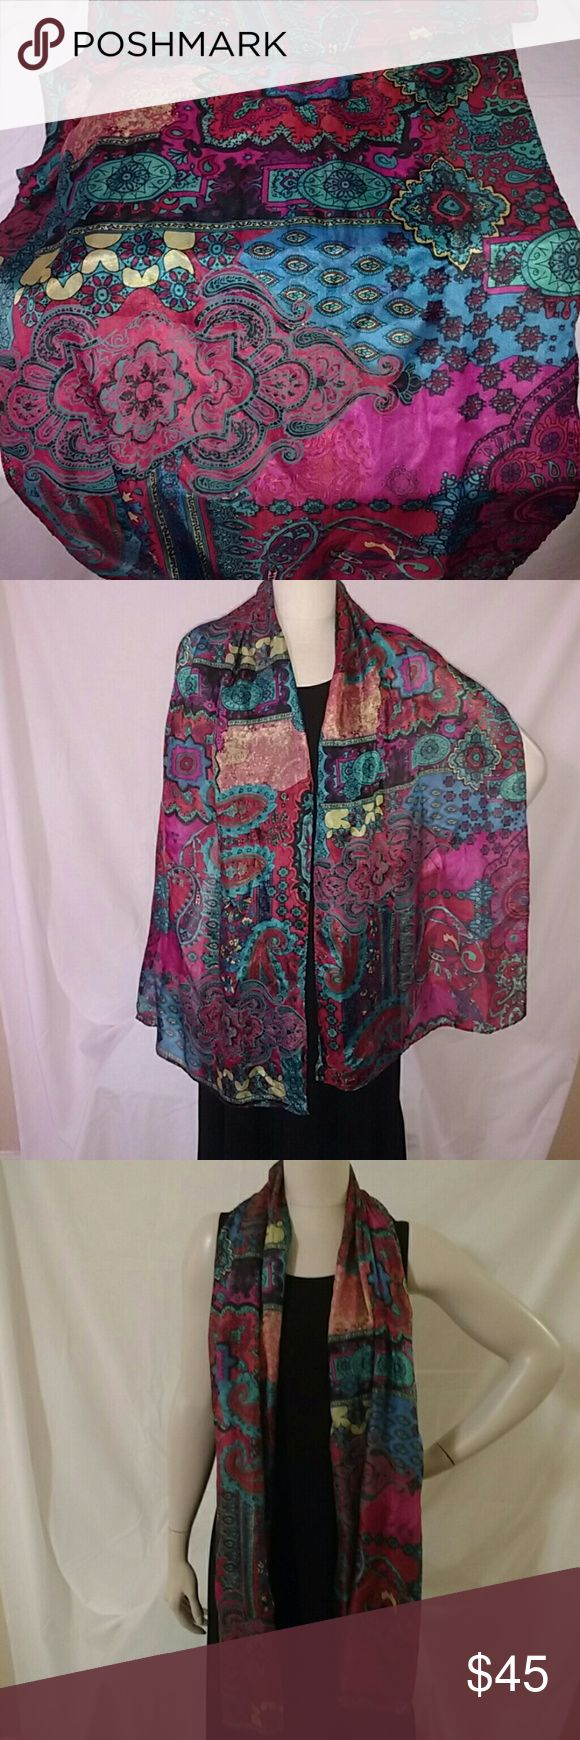 "Chico's silk paisley scarf So gorgeous!  Light and flowy SILK scarf in rich jewel tones of deep fascia pink, turquoise and cobalt blue. 72"" long, 17"" wide. NEW, never worn. Chico's Accessories Scarves & Wraps"